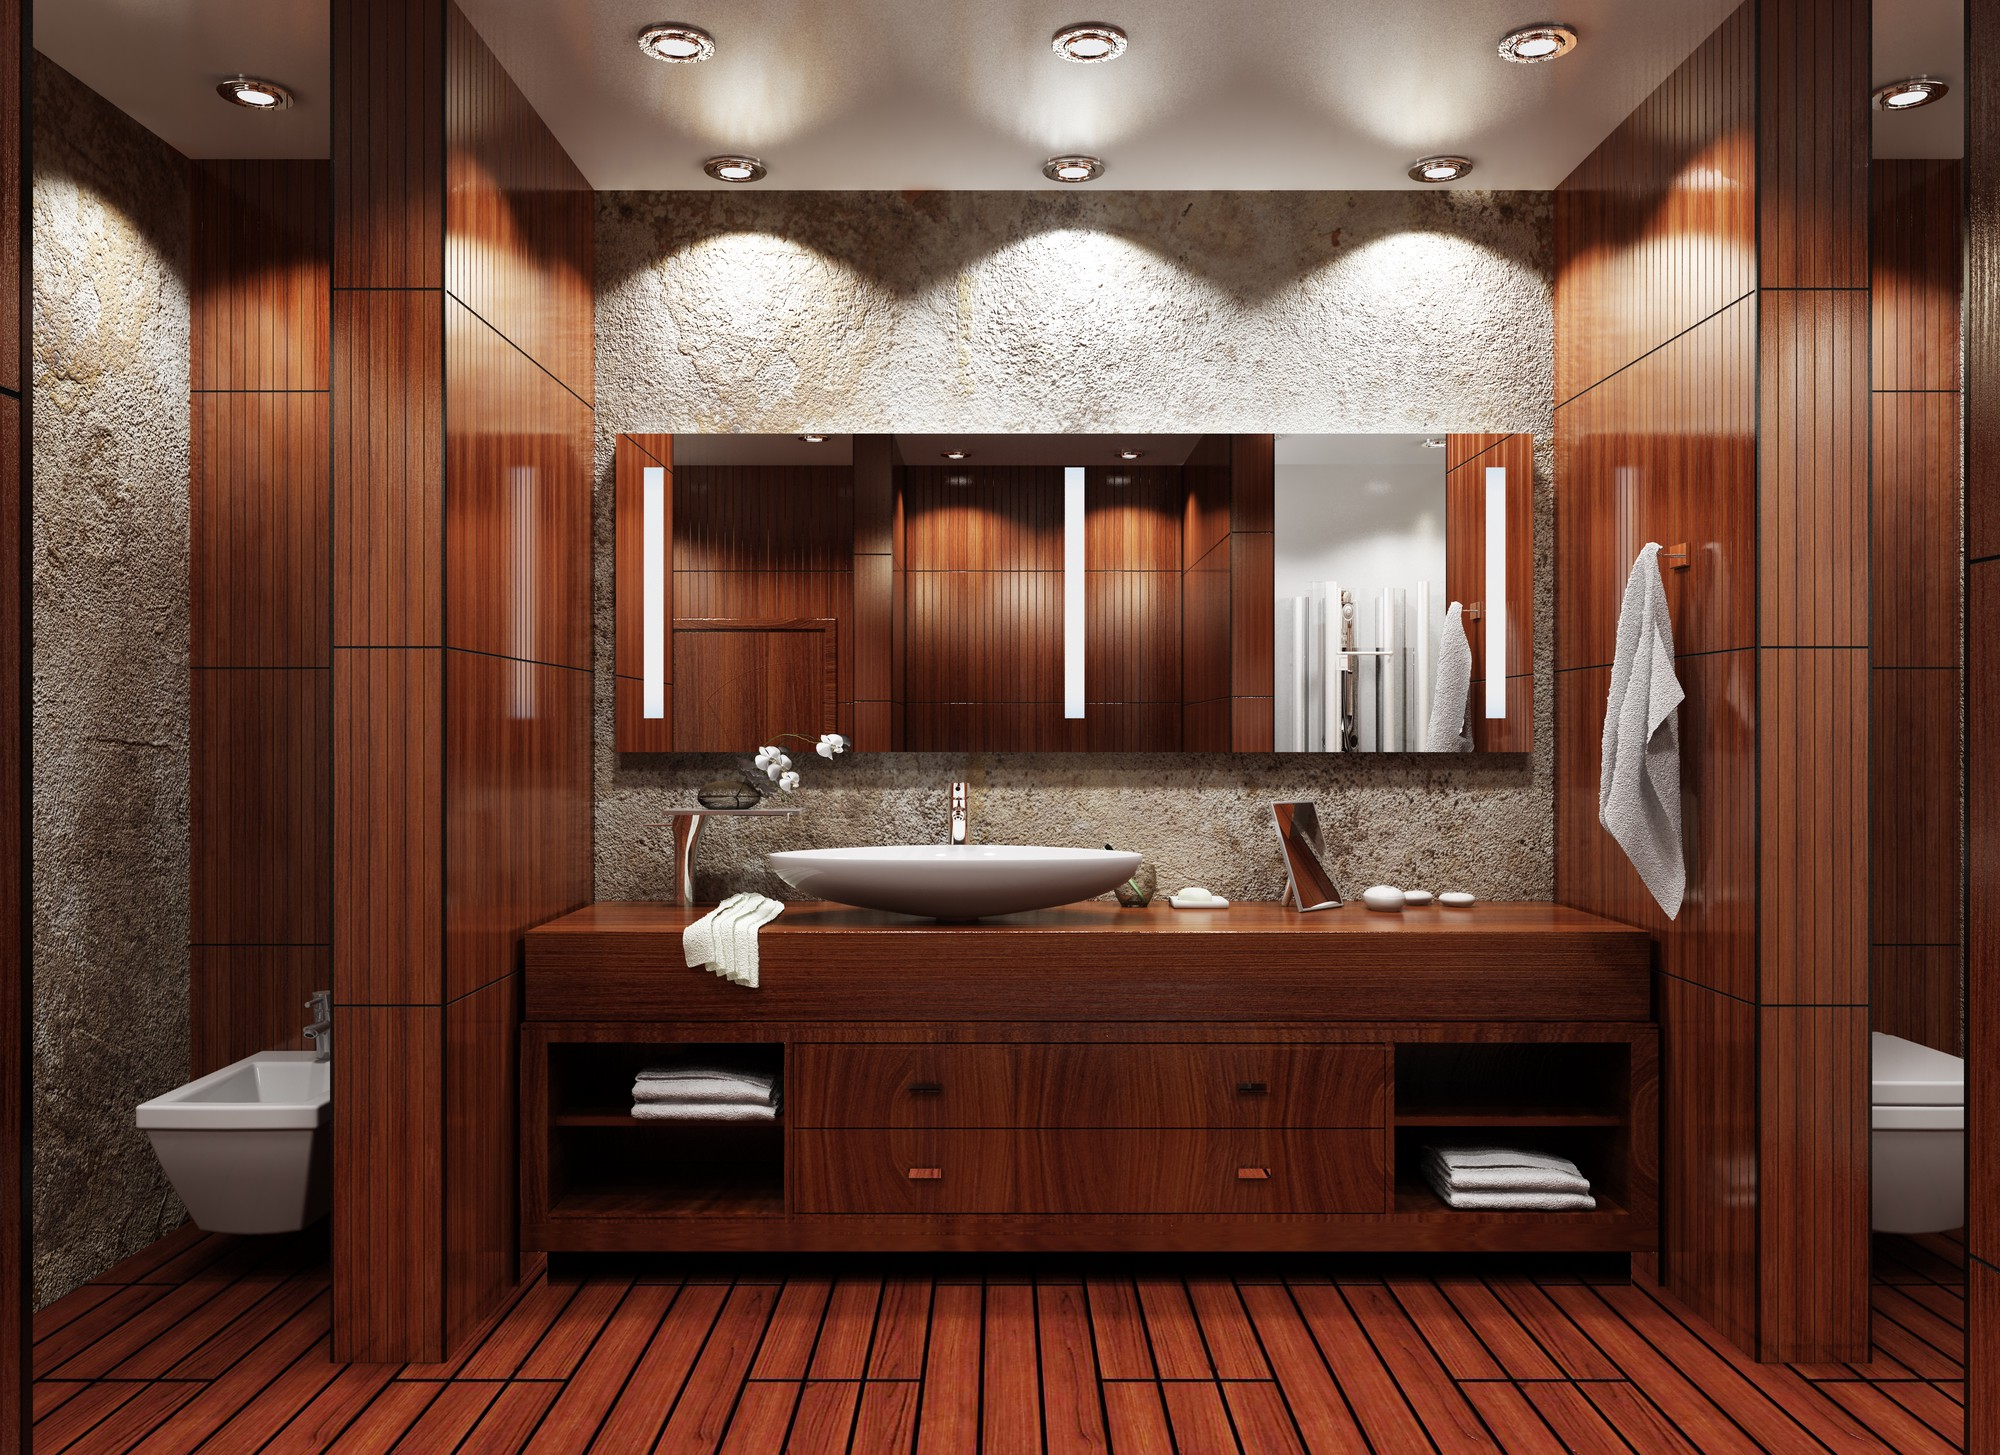 6 Exorbitance Bathroom Interiors Of The Exclusive And Elite By Waleed Qureshi The Positive Life Medium